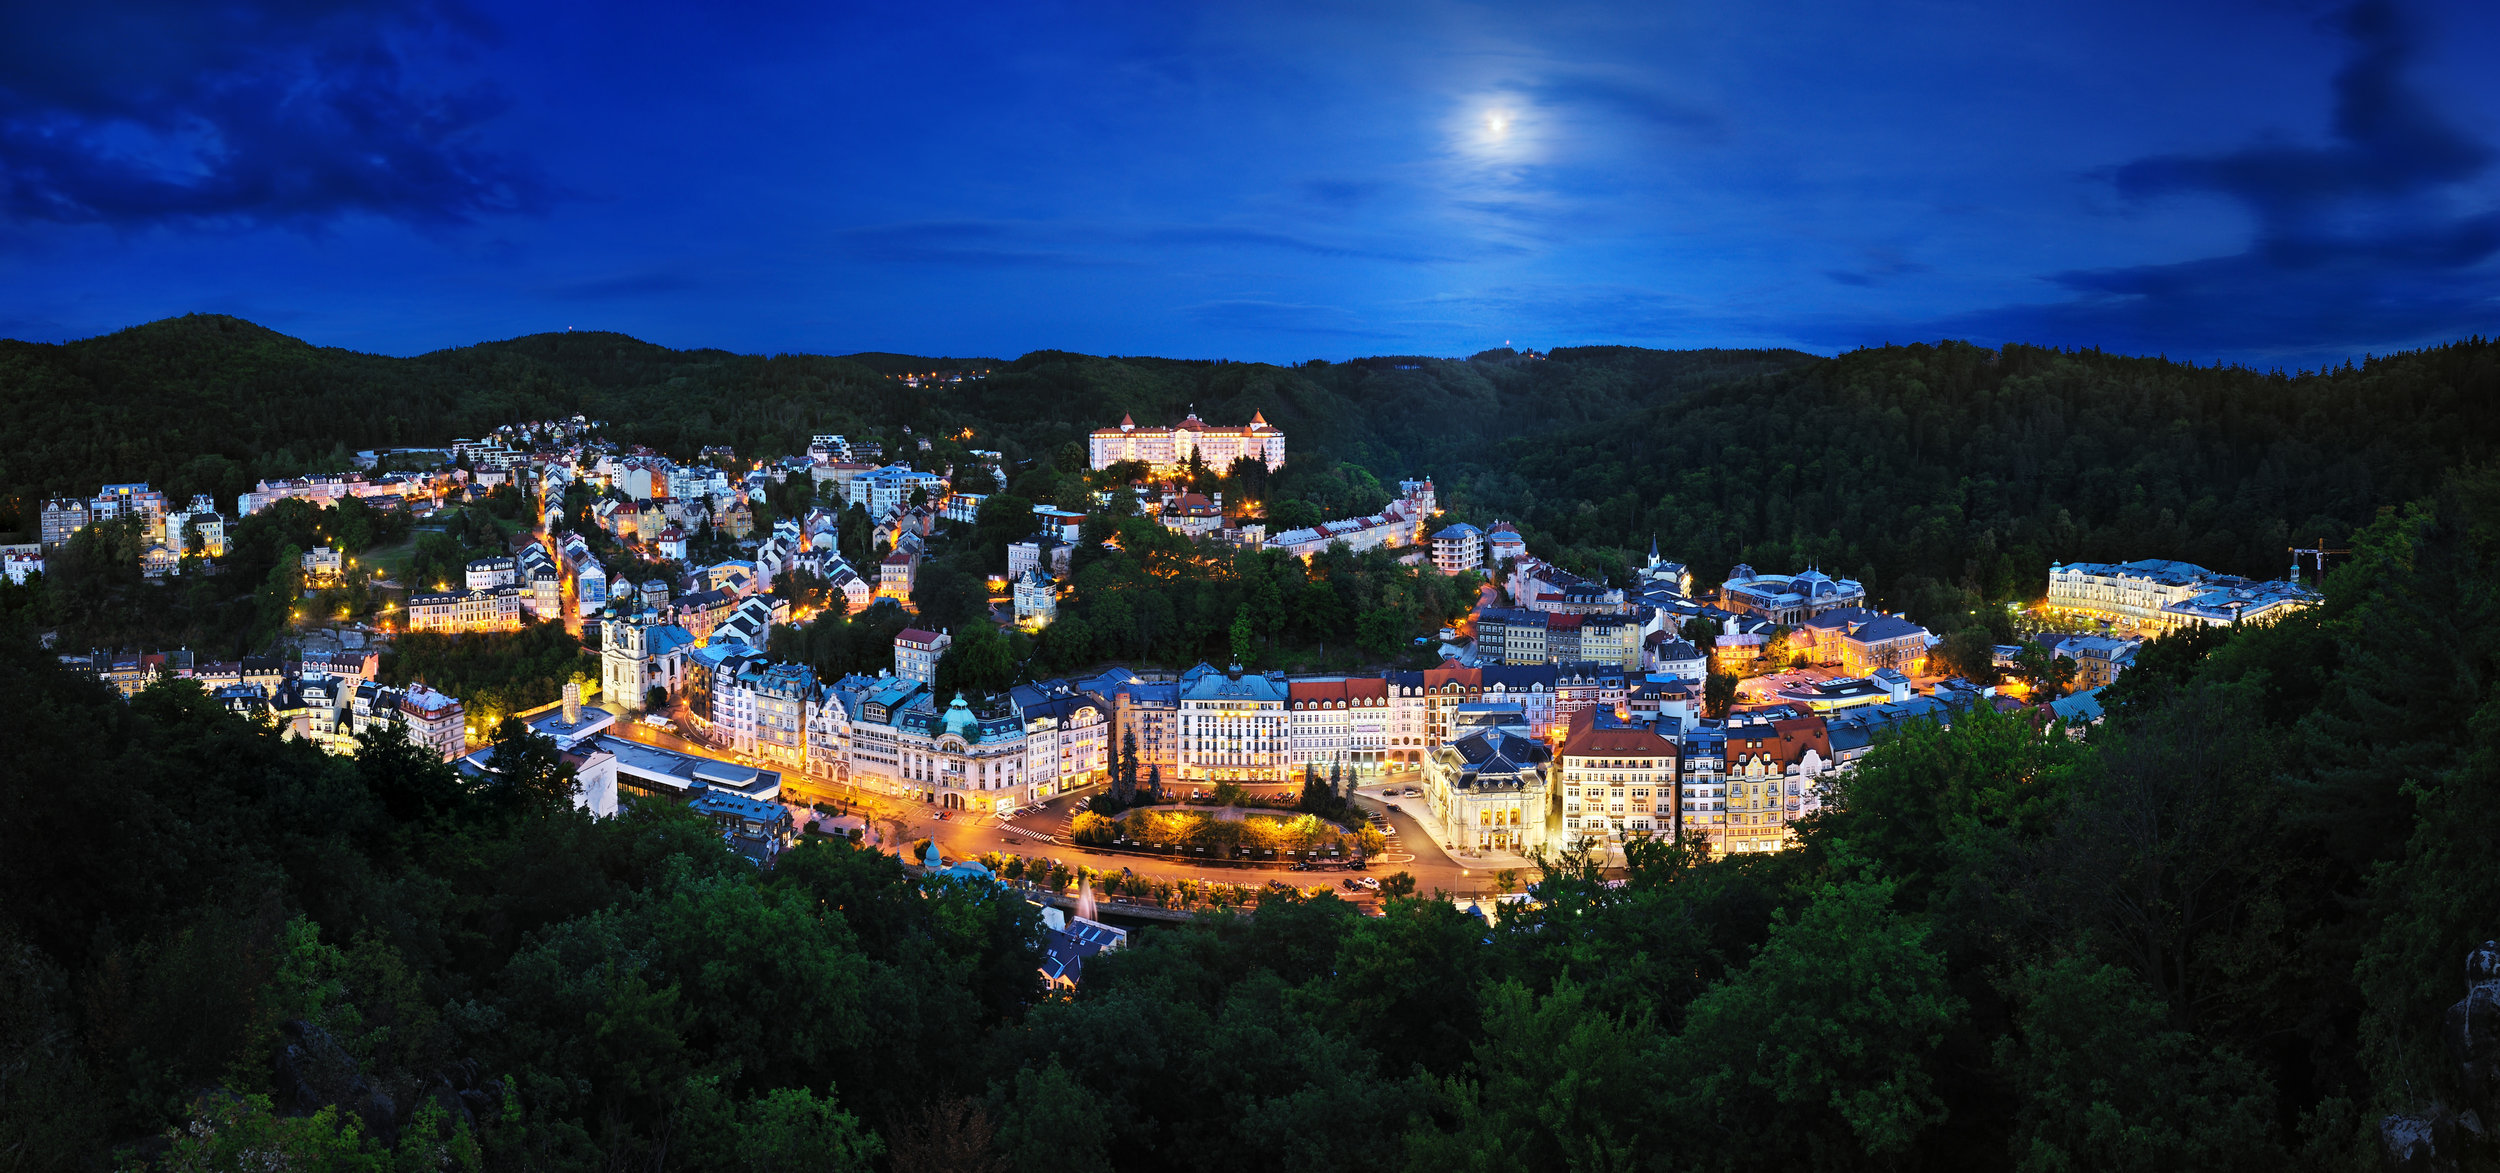 The town of Karlovy Vary